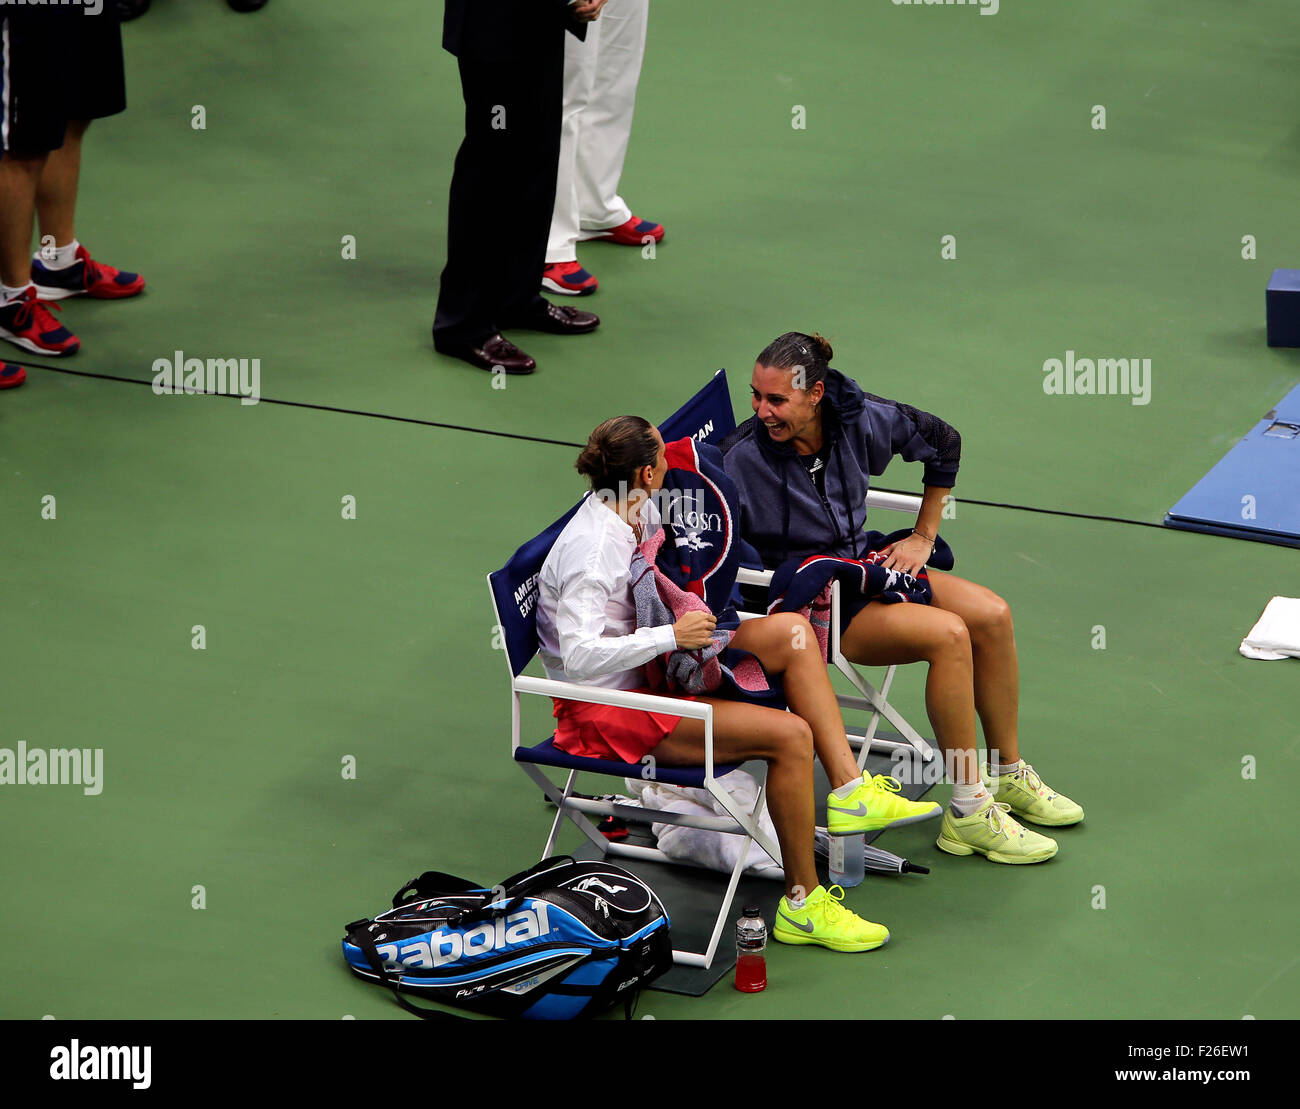 New York, USA. 12th Sep, 2015. Flavia Penetta of Italy and countrywoman Roberta Vinci share a laugh together while - Stock Image